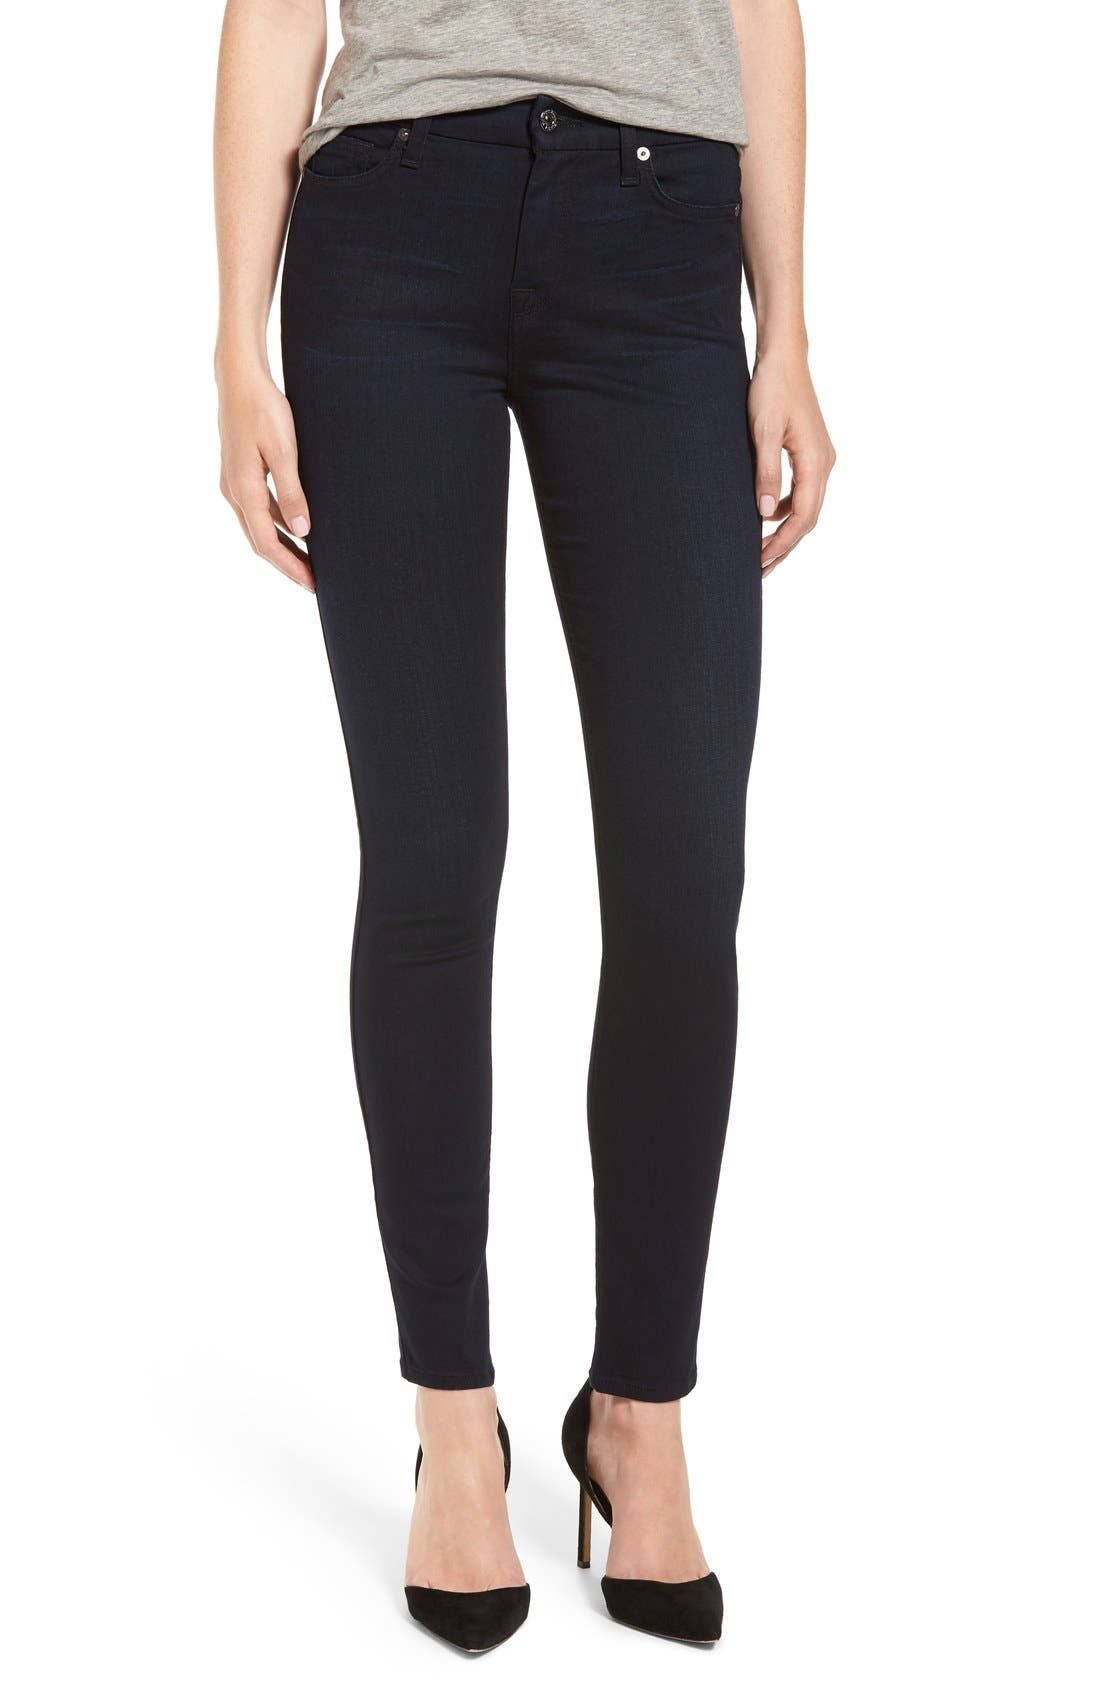 Alternate Image 1 Selected - 7 For All Mankind b(air) High Waist Skinny Jeans (Blue/Black River Thames)